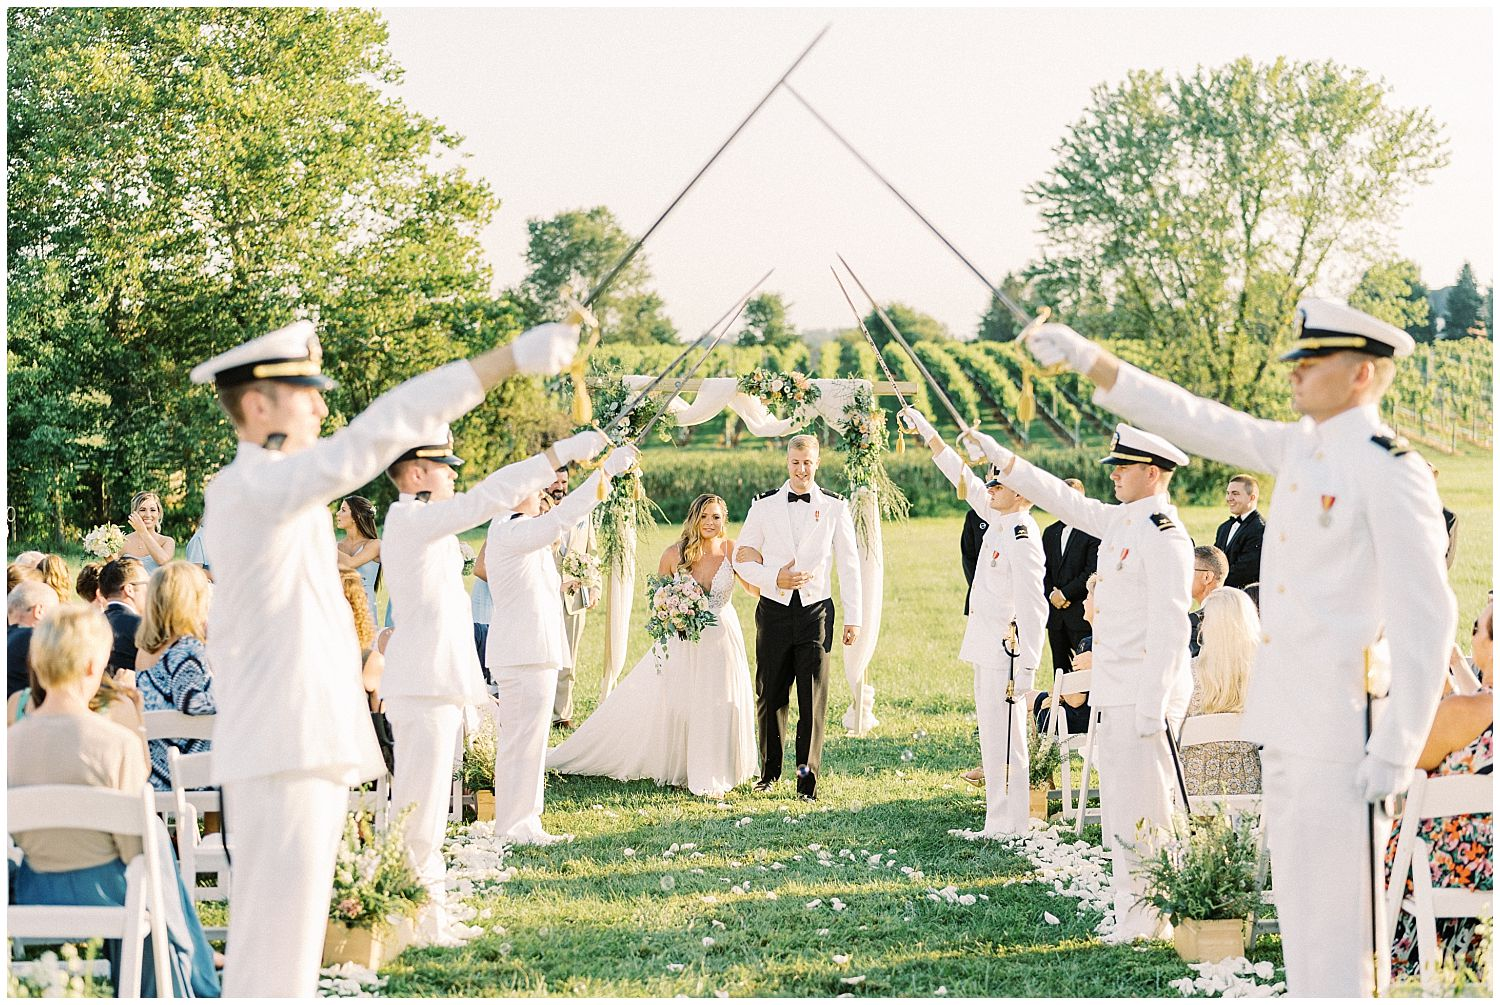 Sword arch recessional at 8 Chains North Wedding